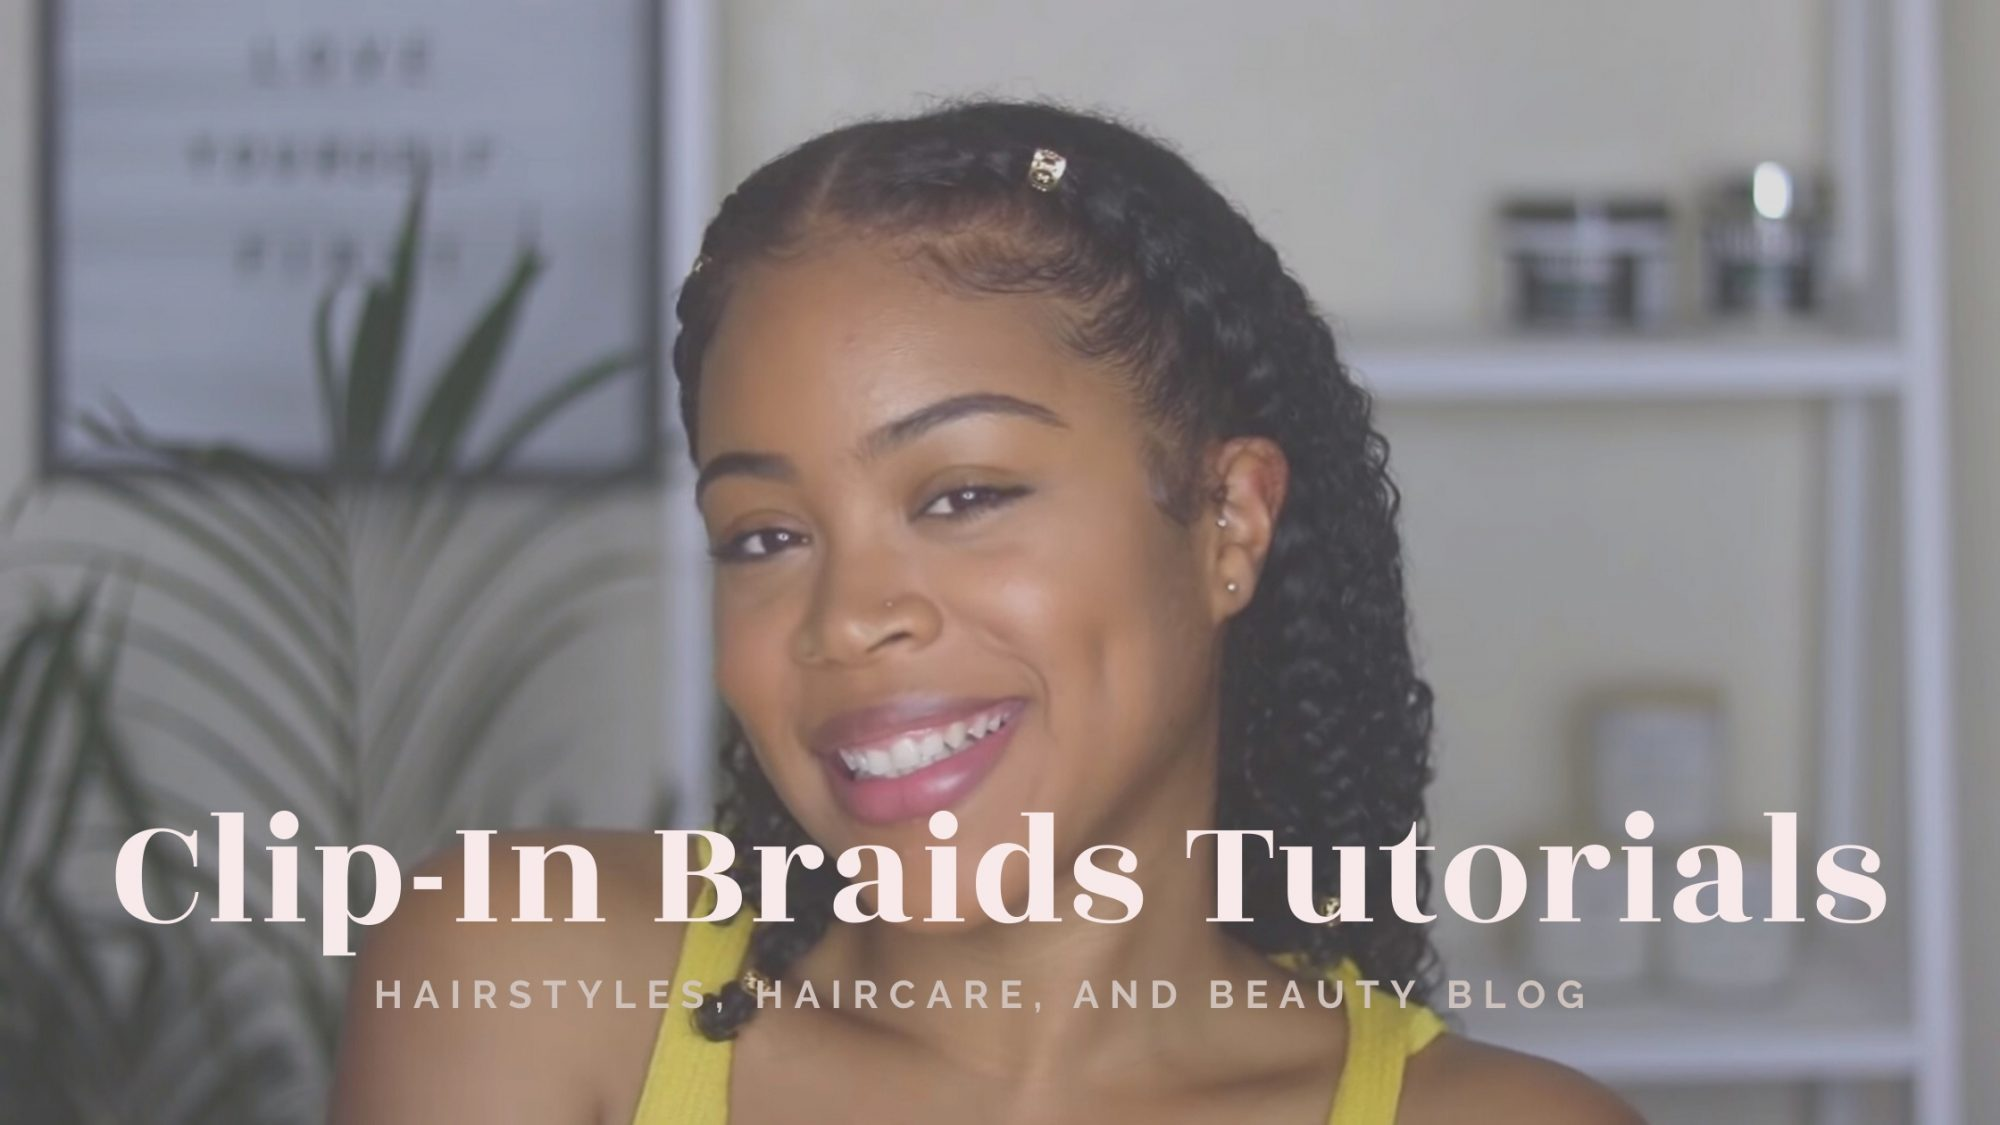 Clip-In Braids